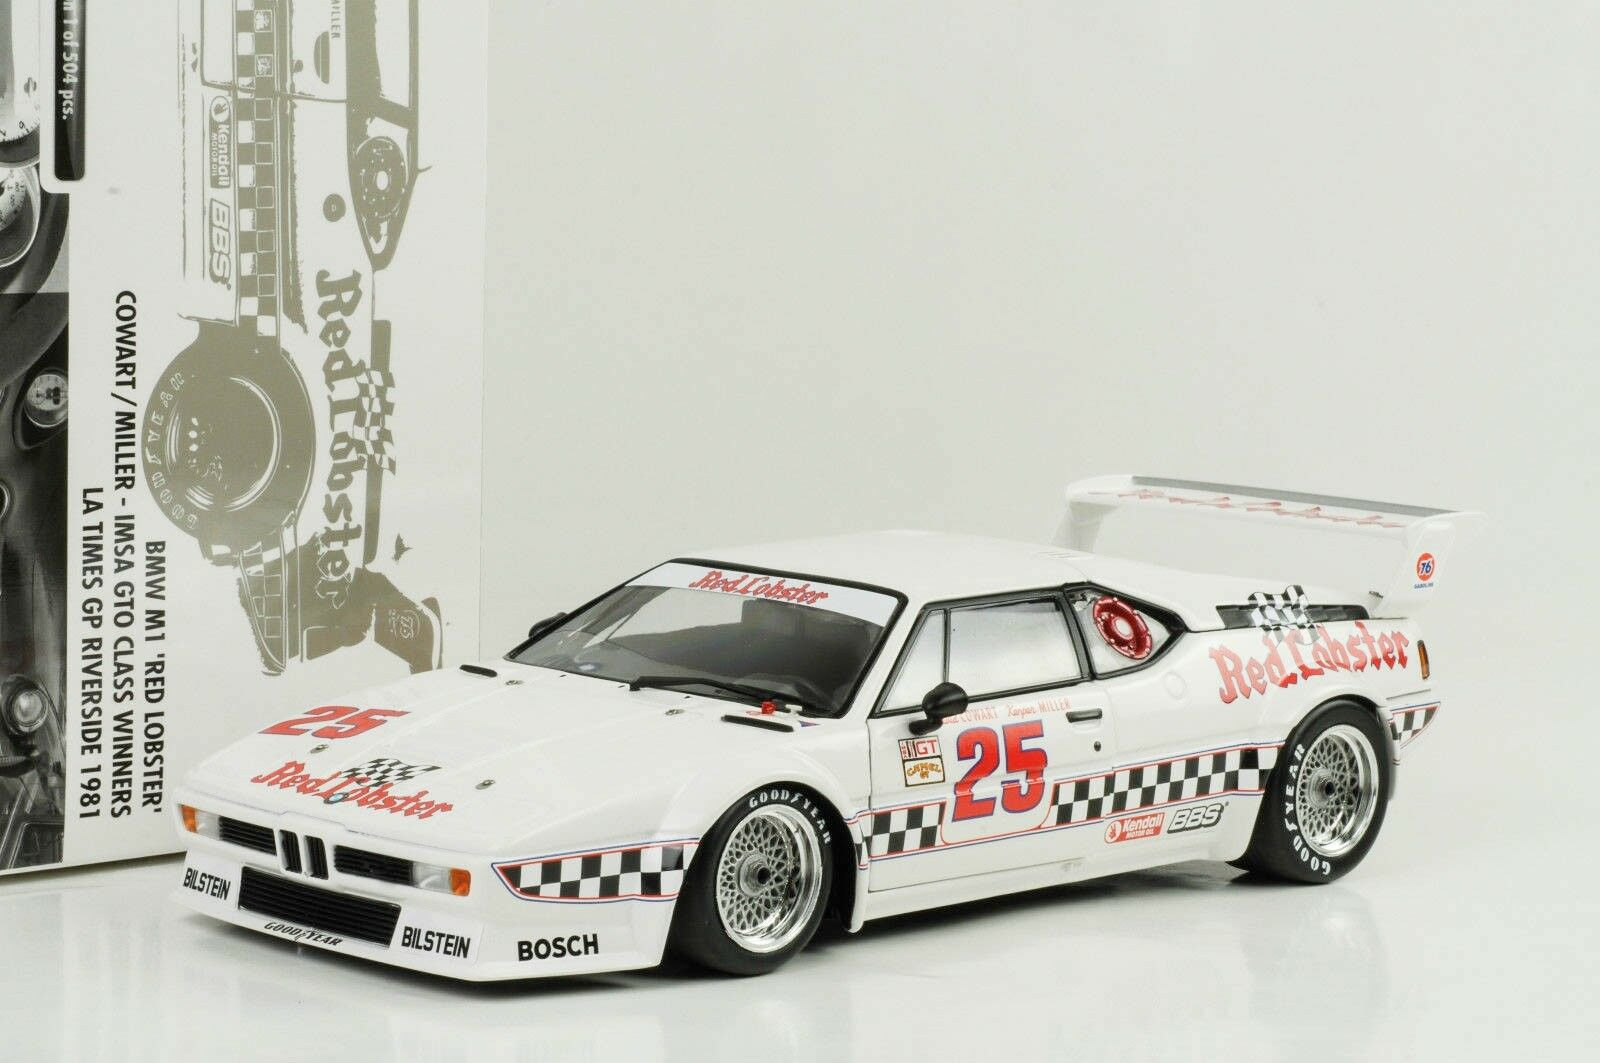 1981 BMW M1 Red Lobster Imsa Gp Riverside Winner 1 18 Minichamps 504 Pcs